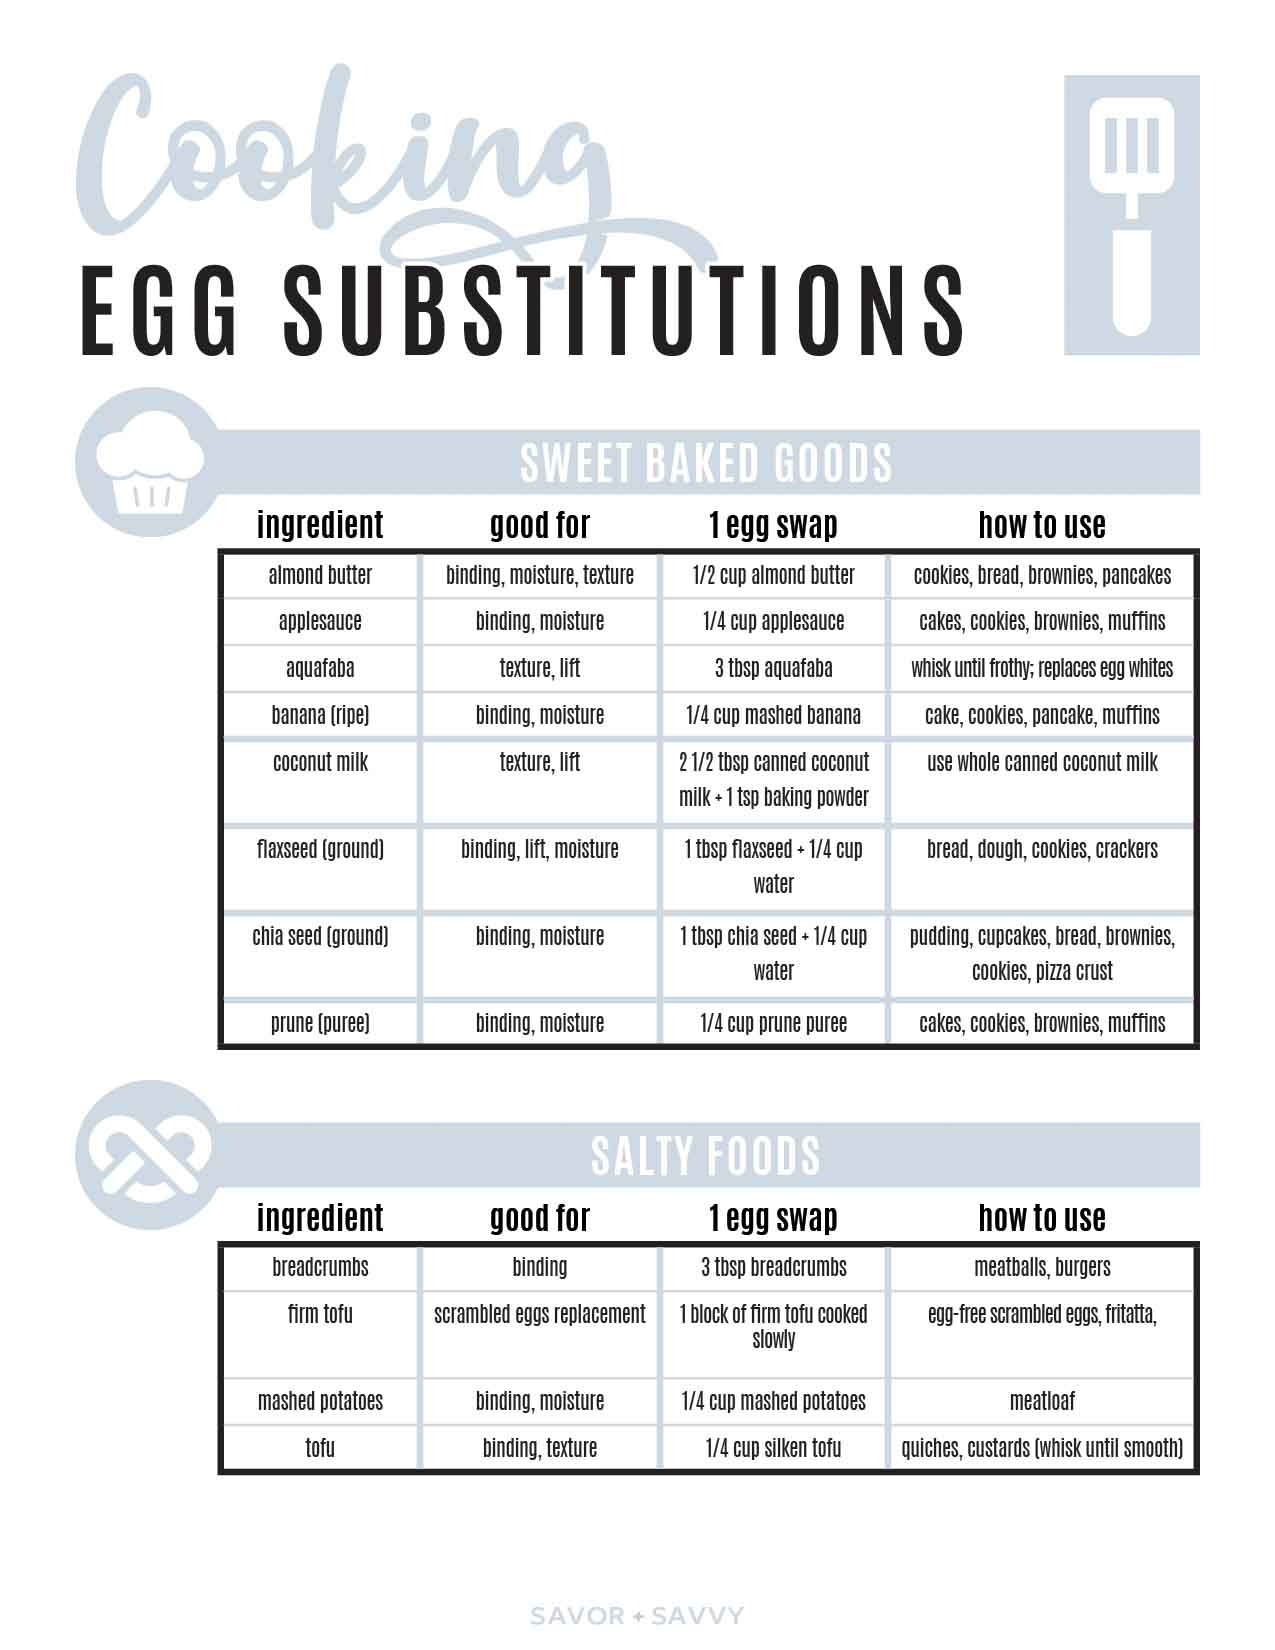 page of the egg substitution printable.